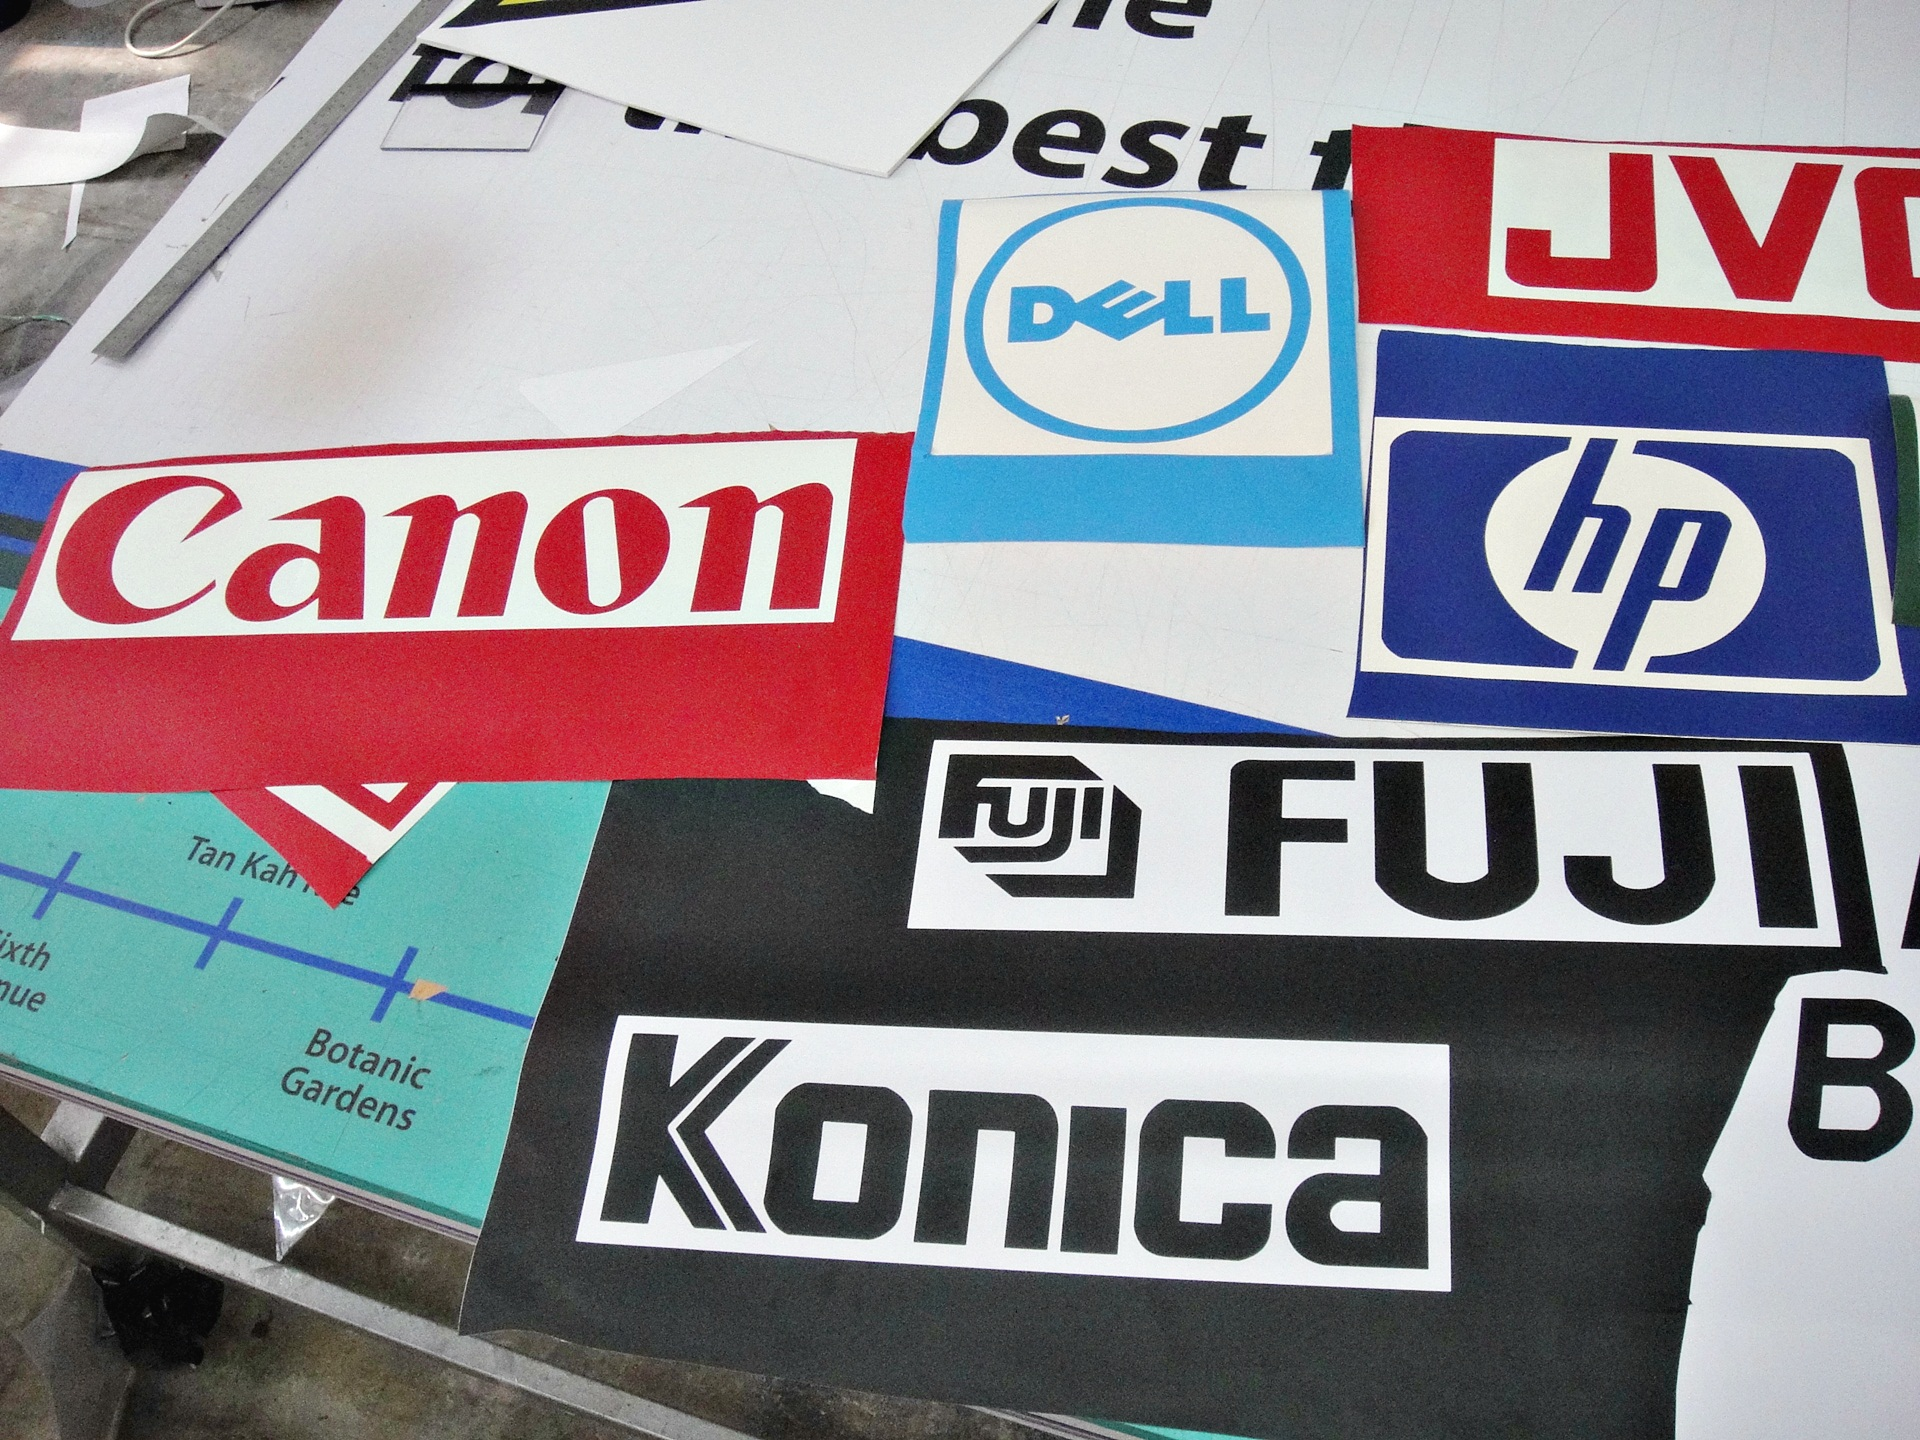 Plixos Sticker Die Cut Services - What are custom die cut stickers